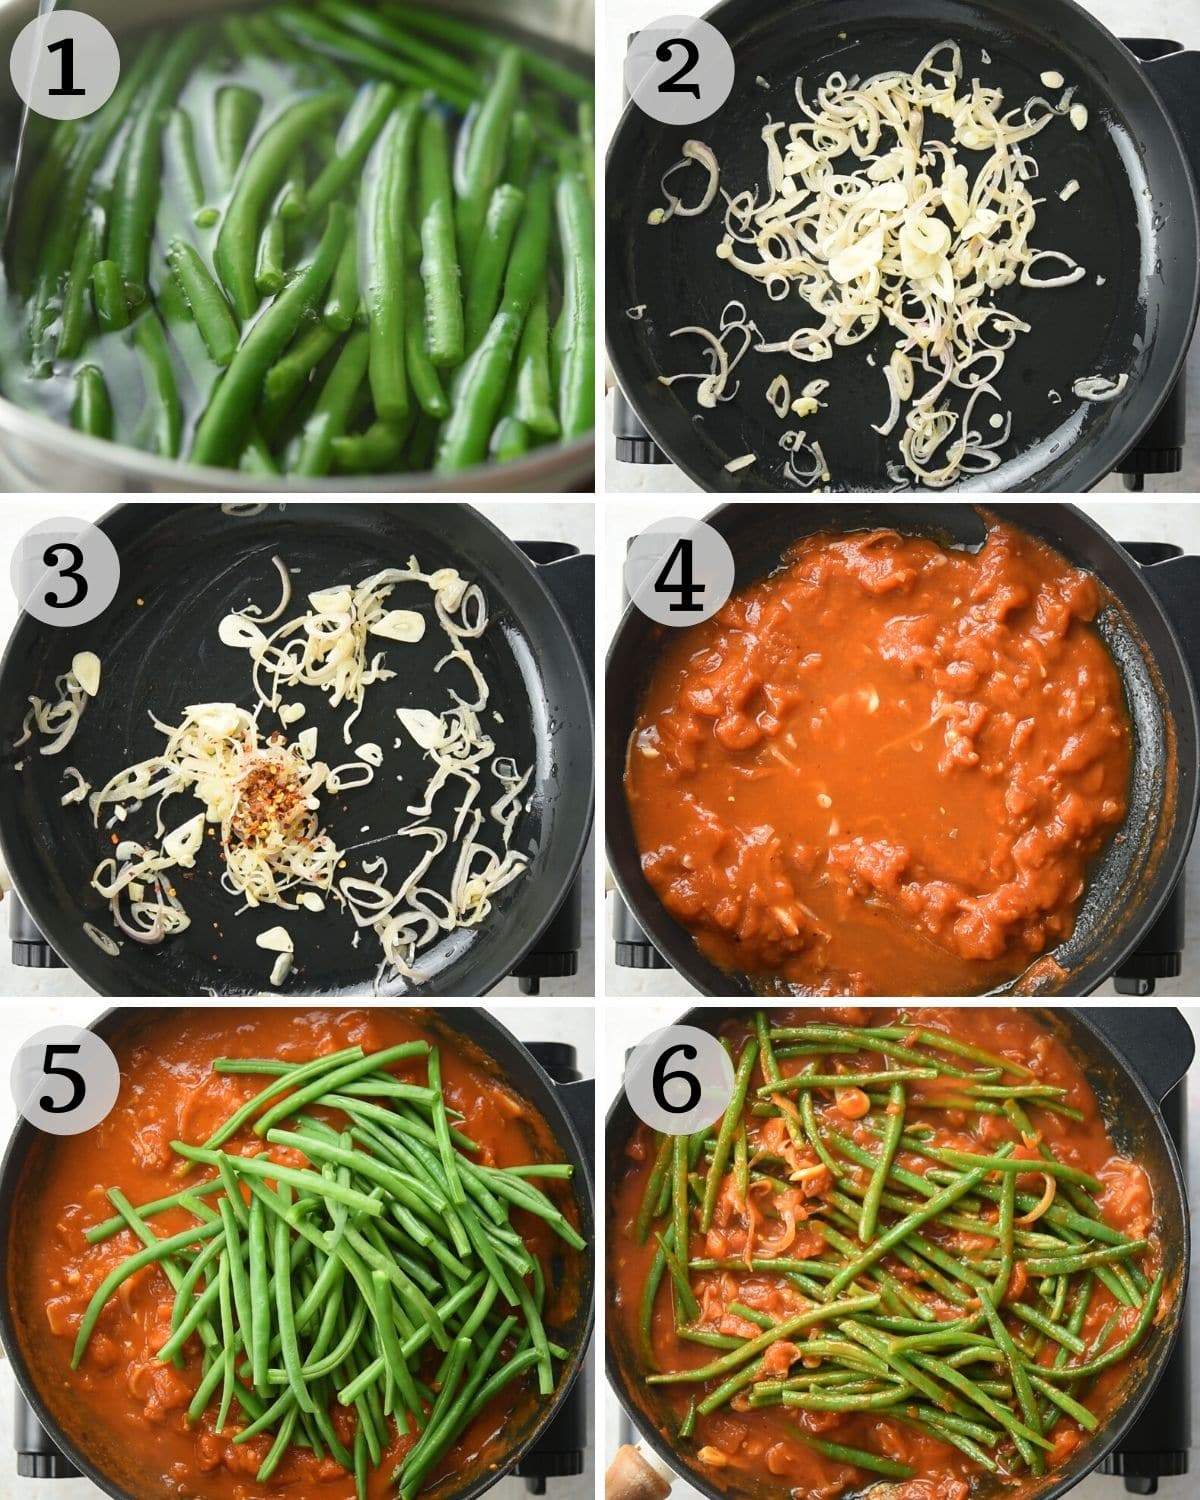 Step by step photos for making Italian green beans